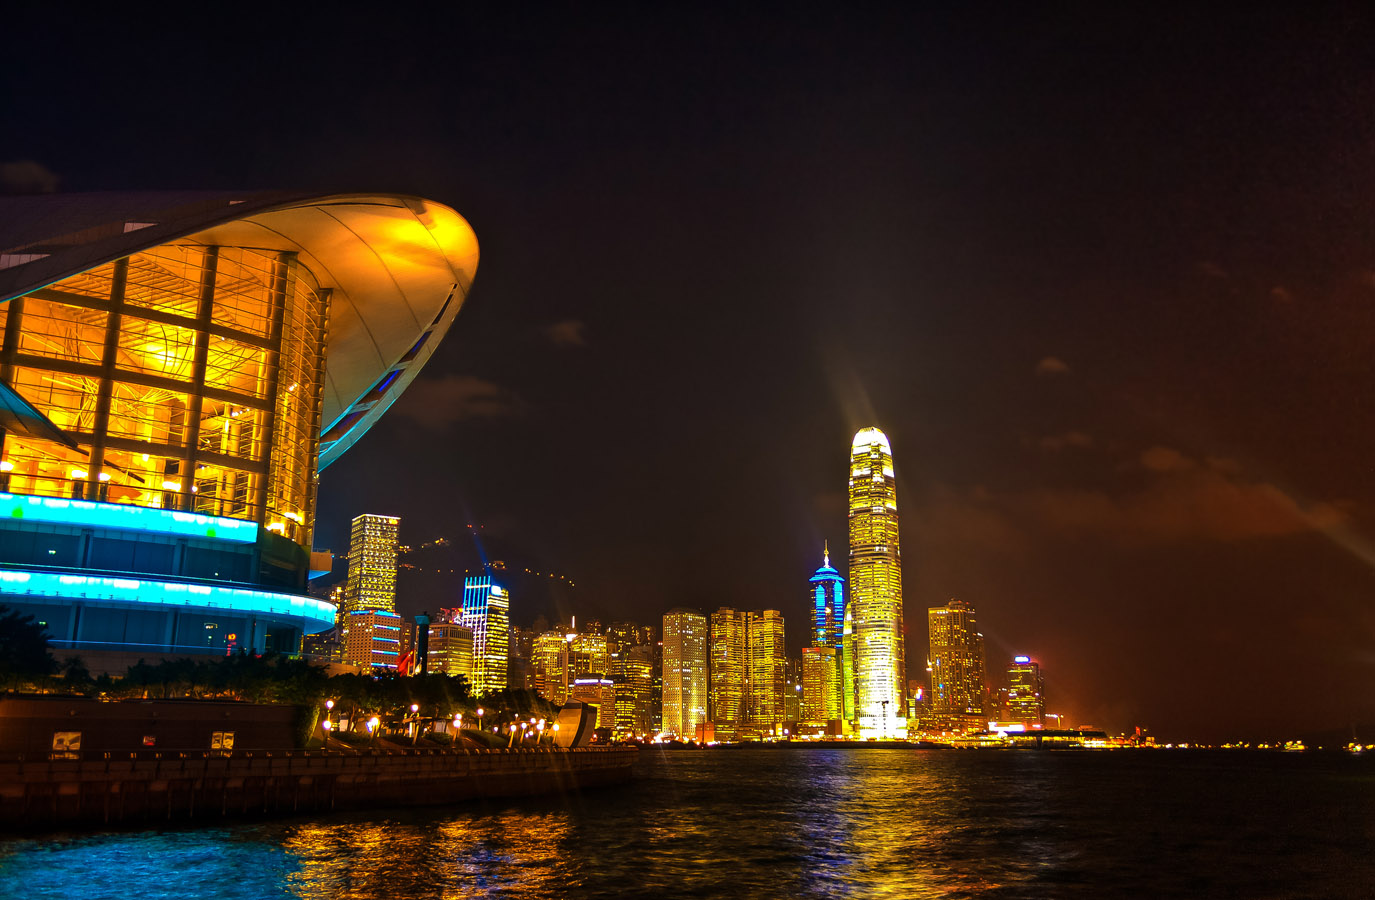 The Hong Kong bay from the water